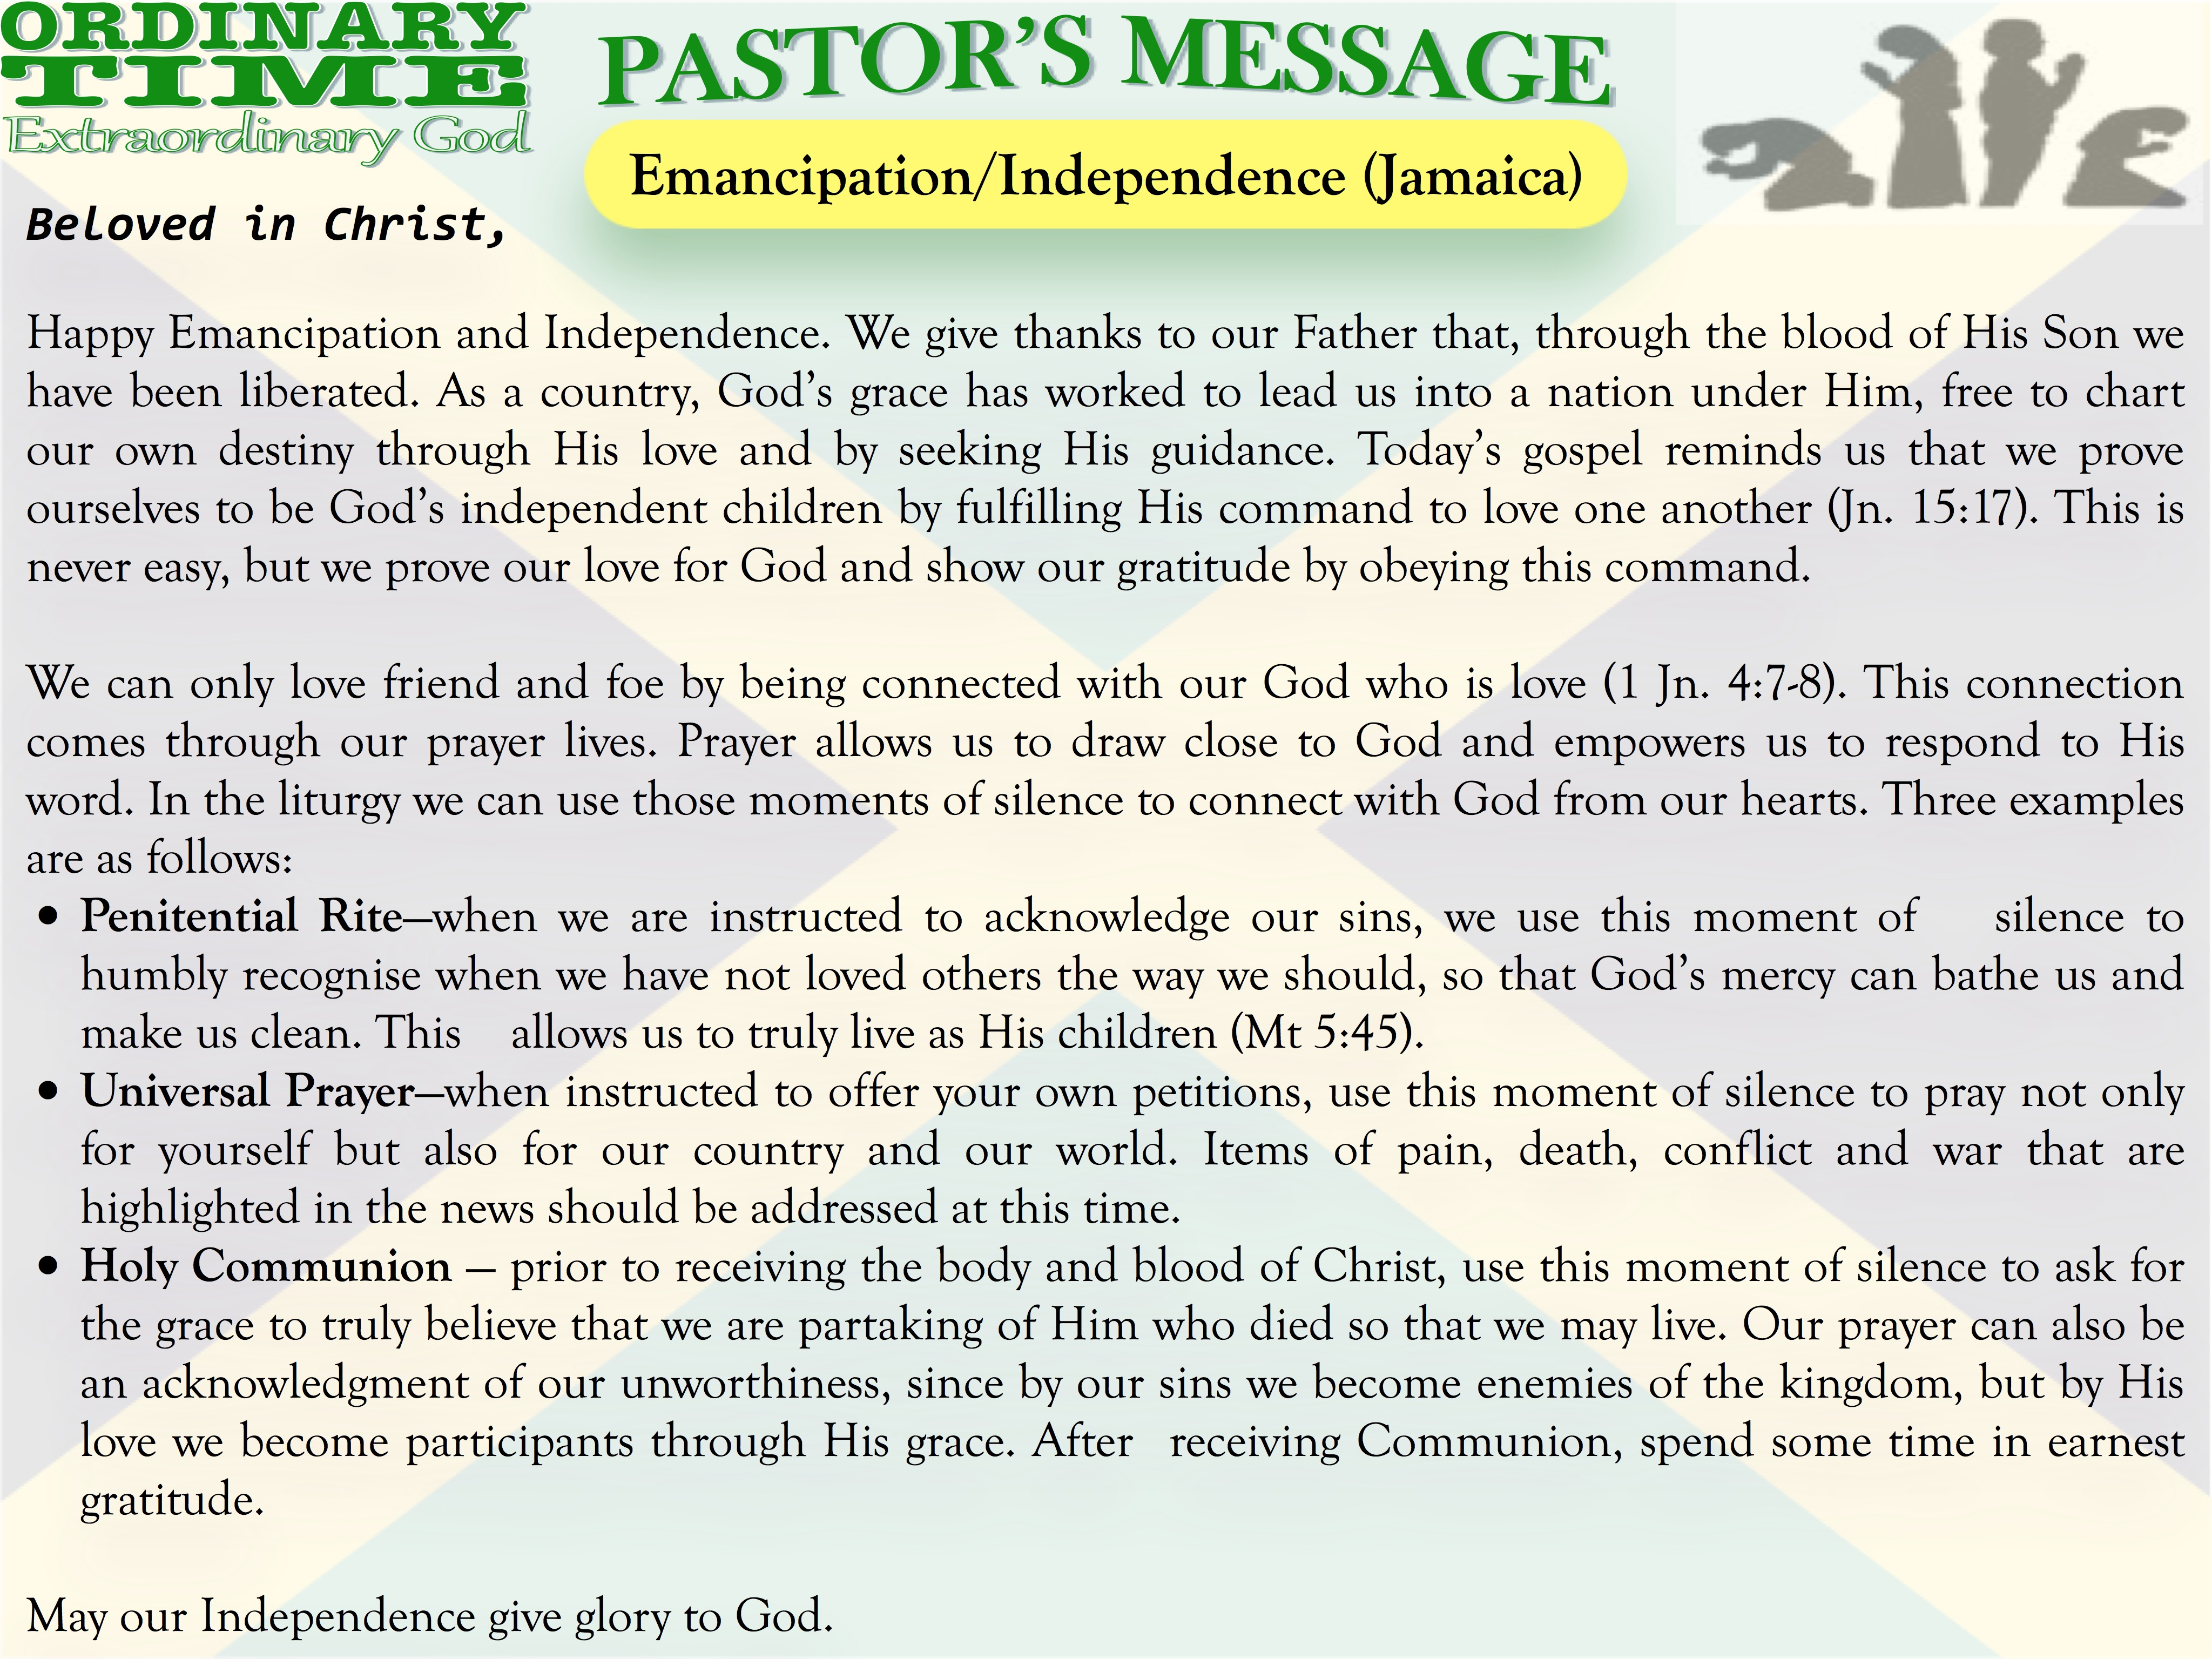 Pastor's Message - 21 Emancipation and Indepence